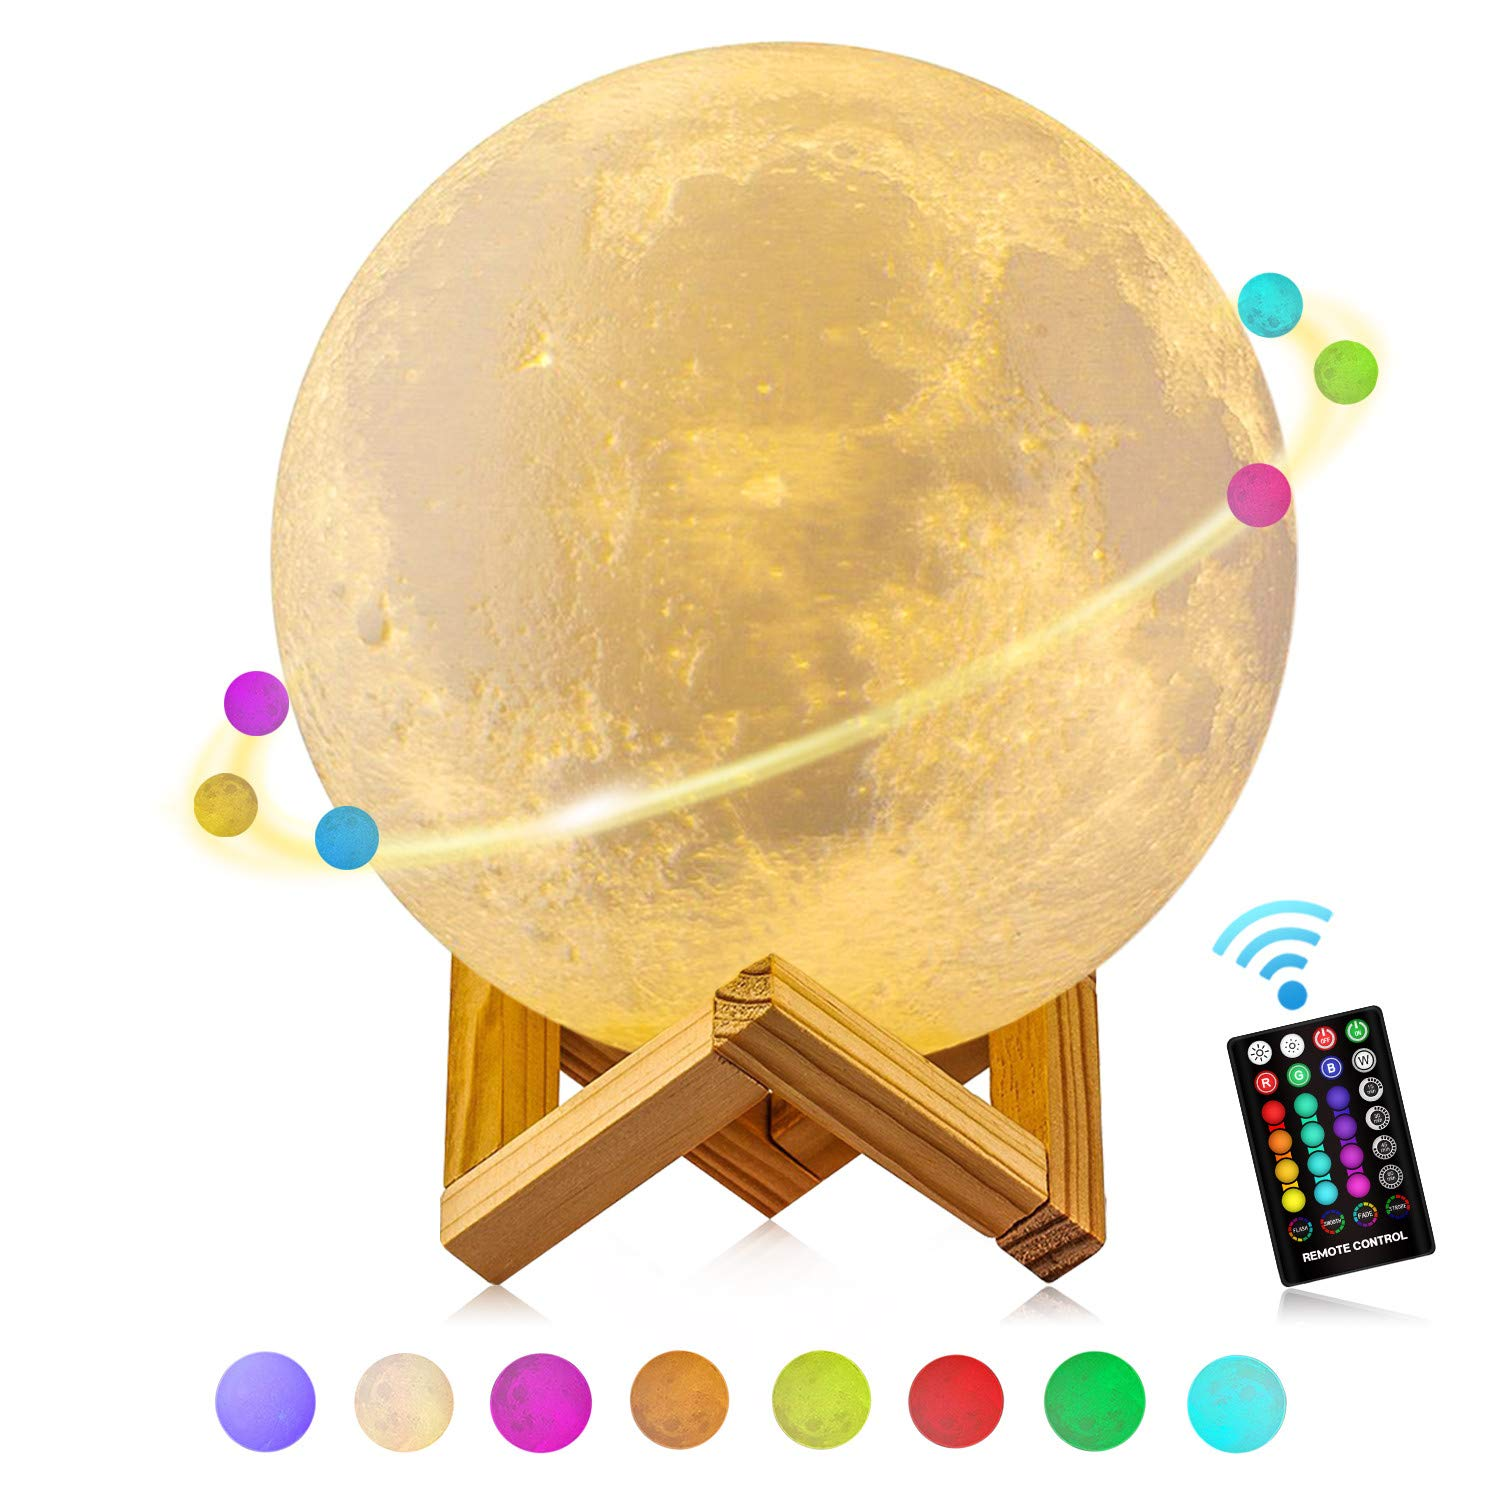 Grand! 18cm Lampe de Lune, GDREAMT 16 Couleurs 3D Lumiè re Lune Té lé commande et Contrô le Tactile/Fonction Minuterie/Dimmable/Lampe de nuit Rechargeable USB Universelle (7,1inch)